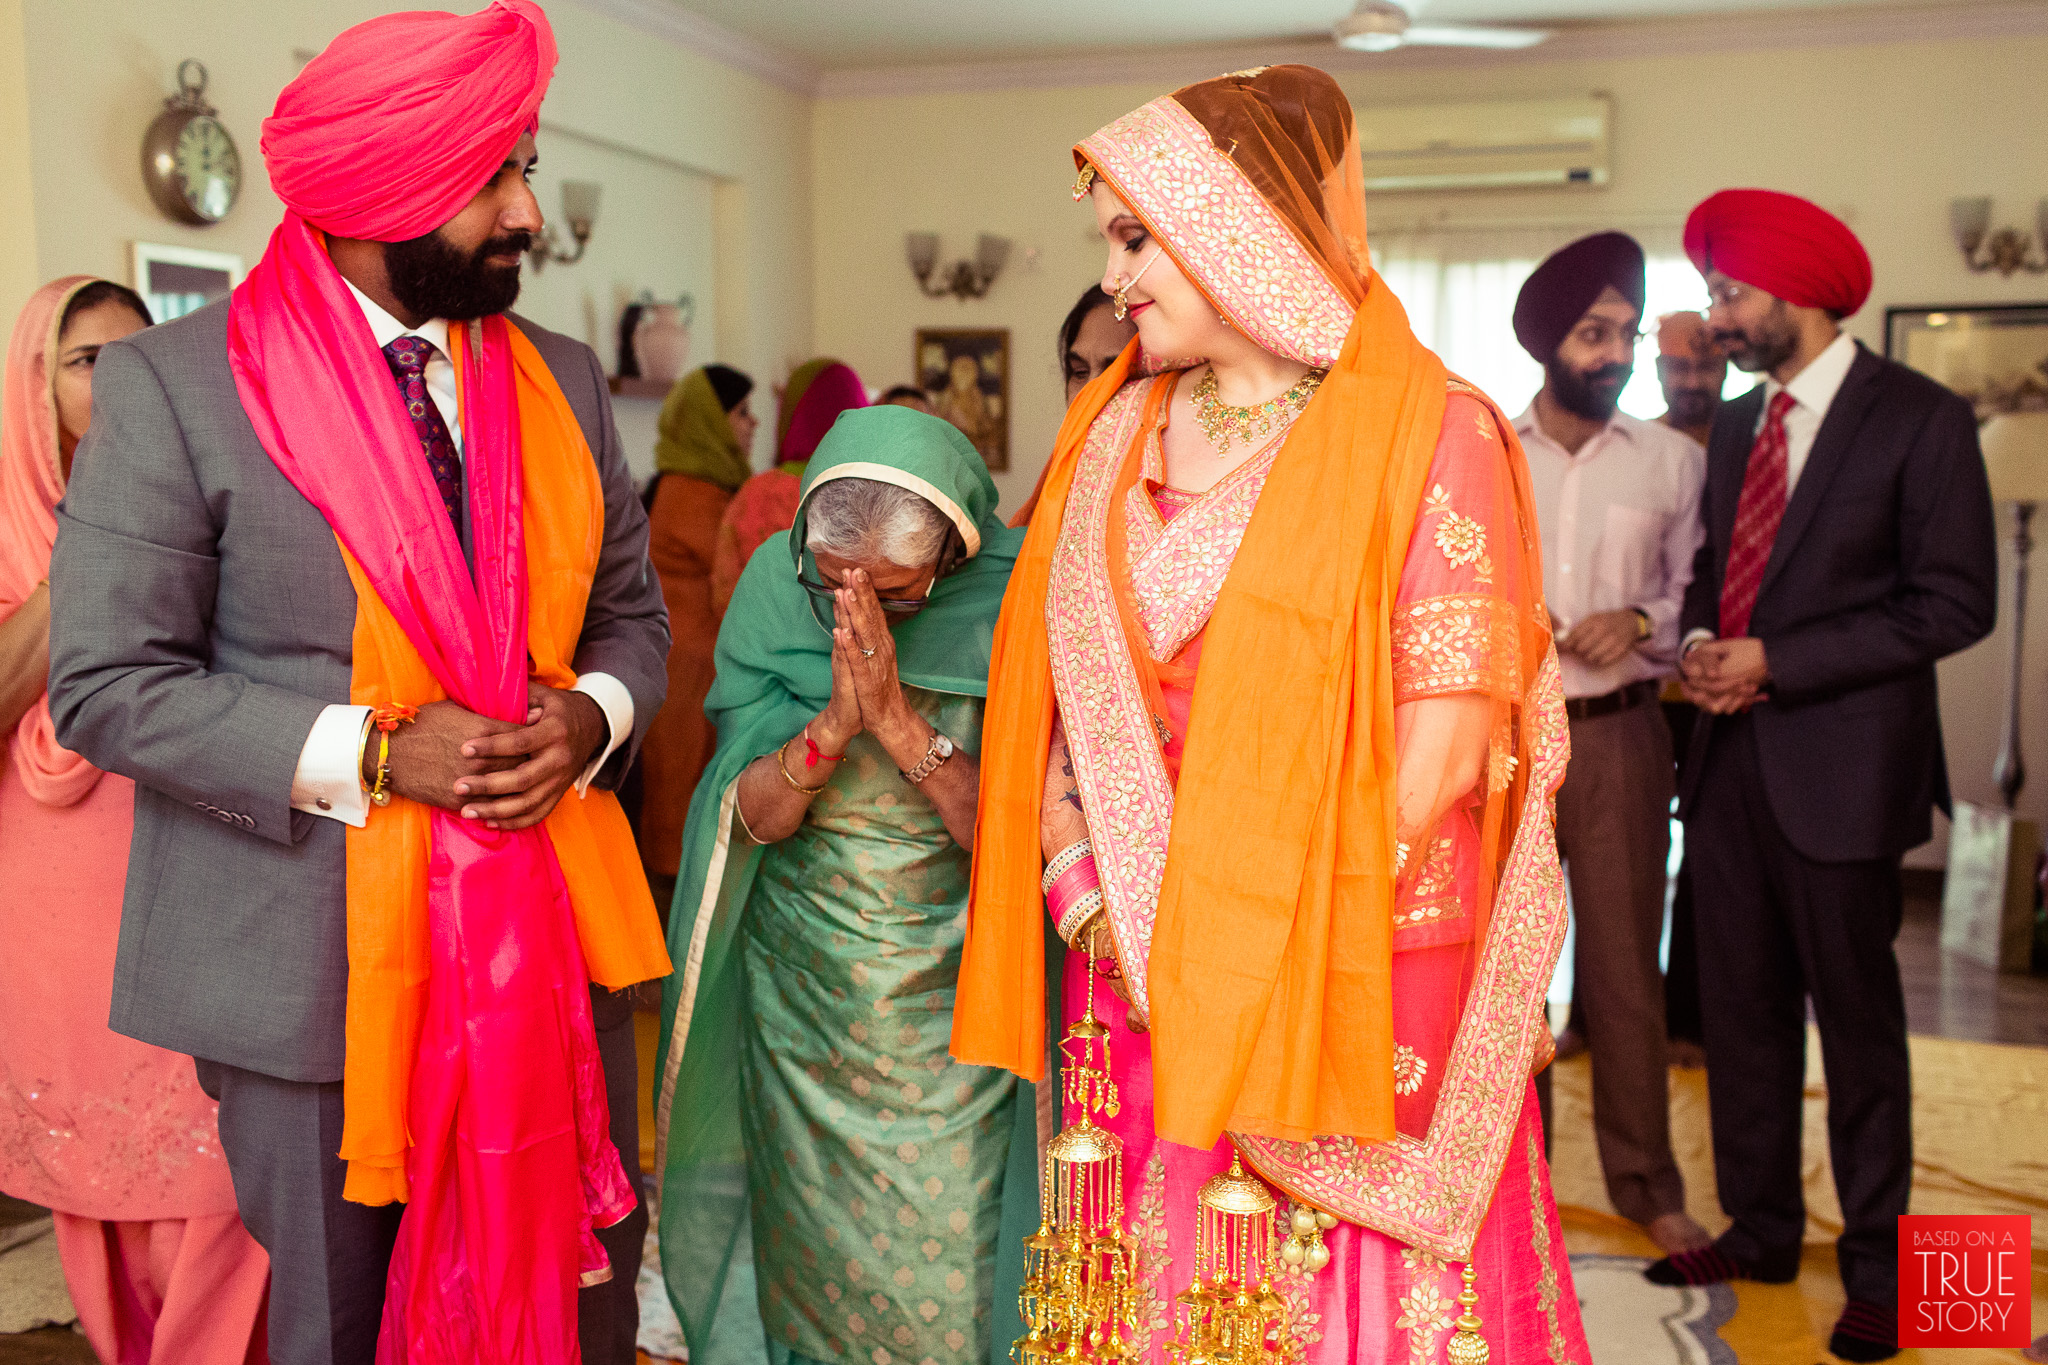 candid-photography-sikh-wedding-bangalore-0023.jpg